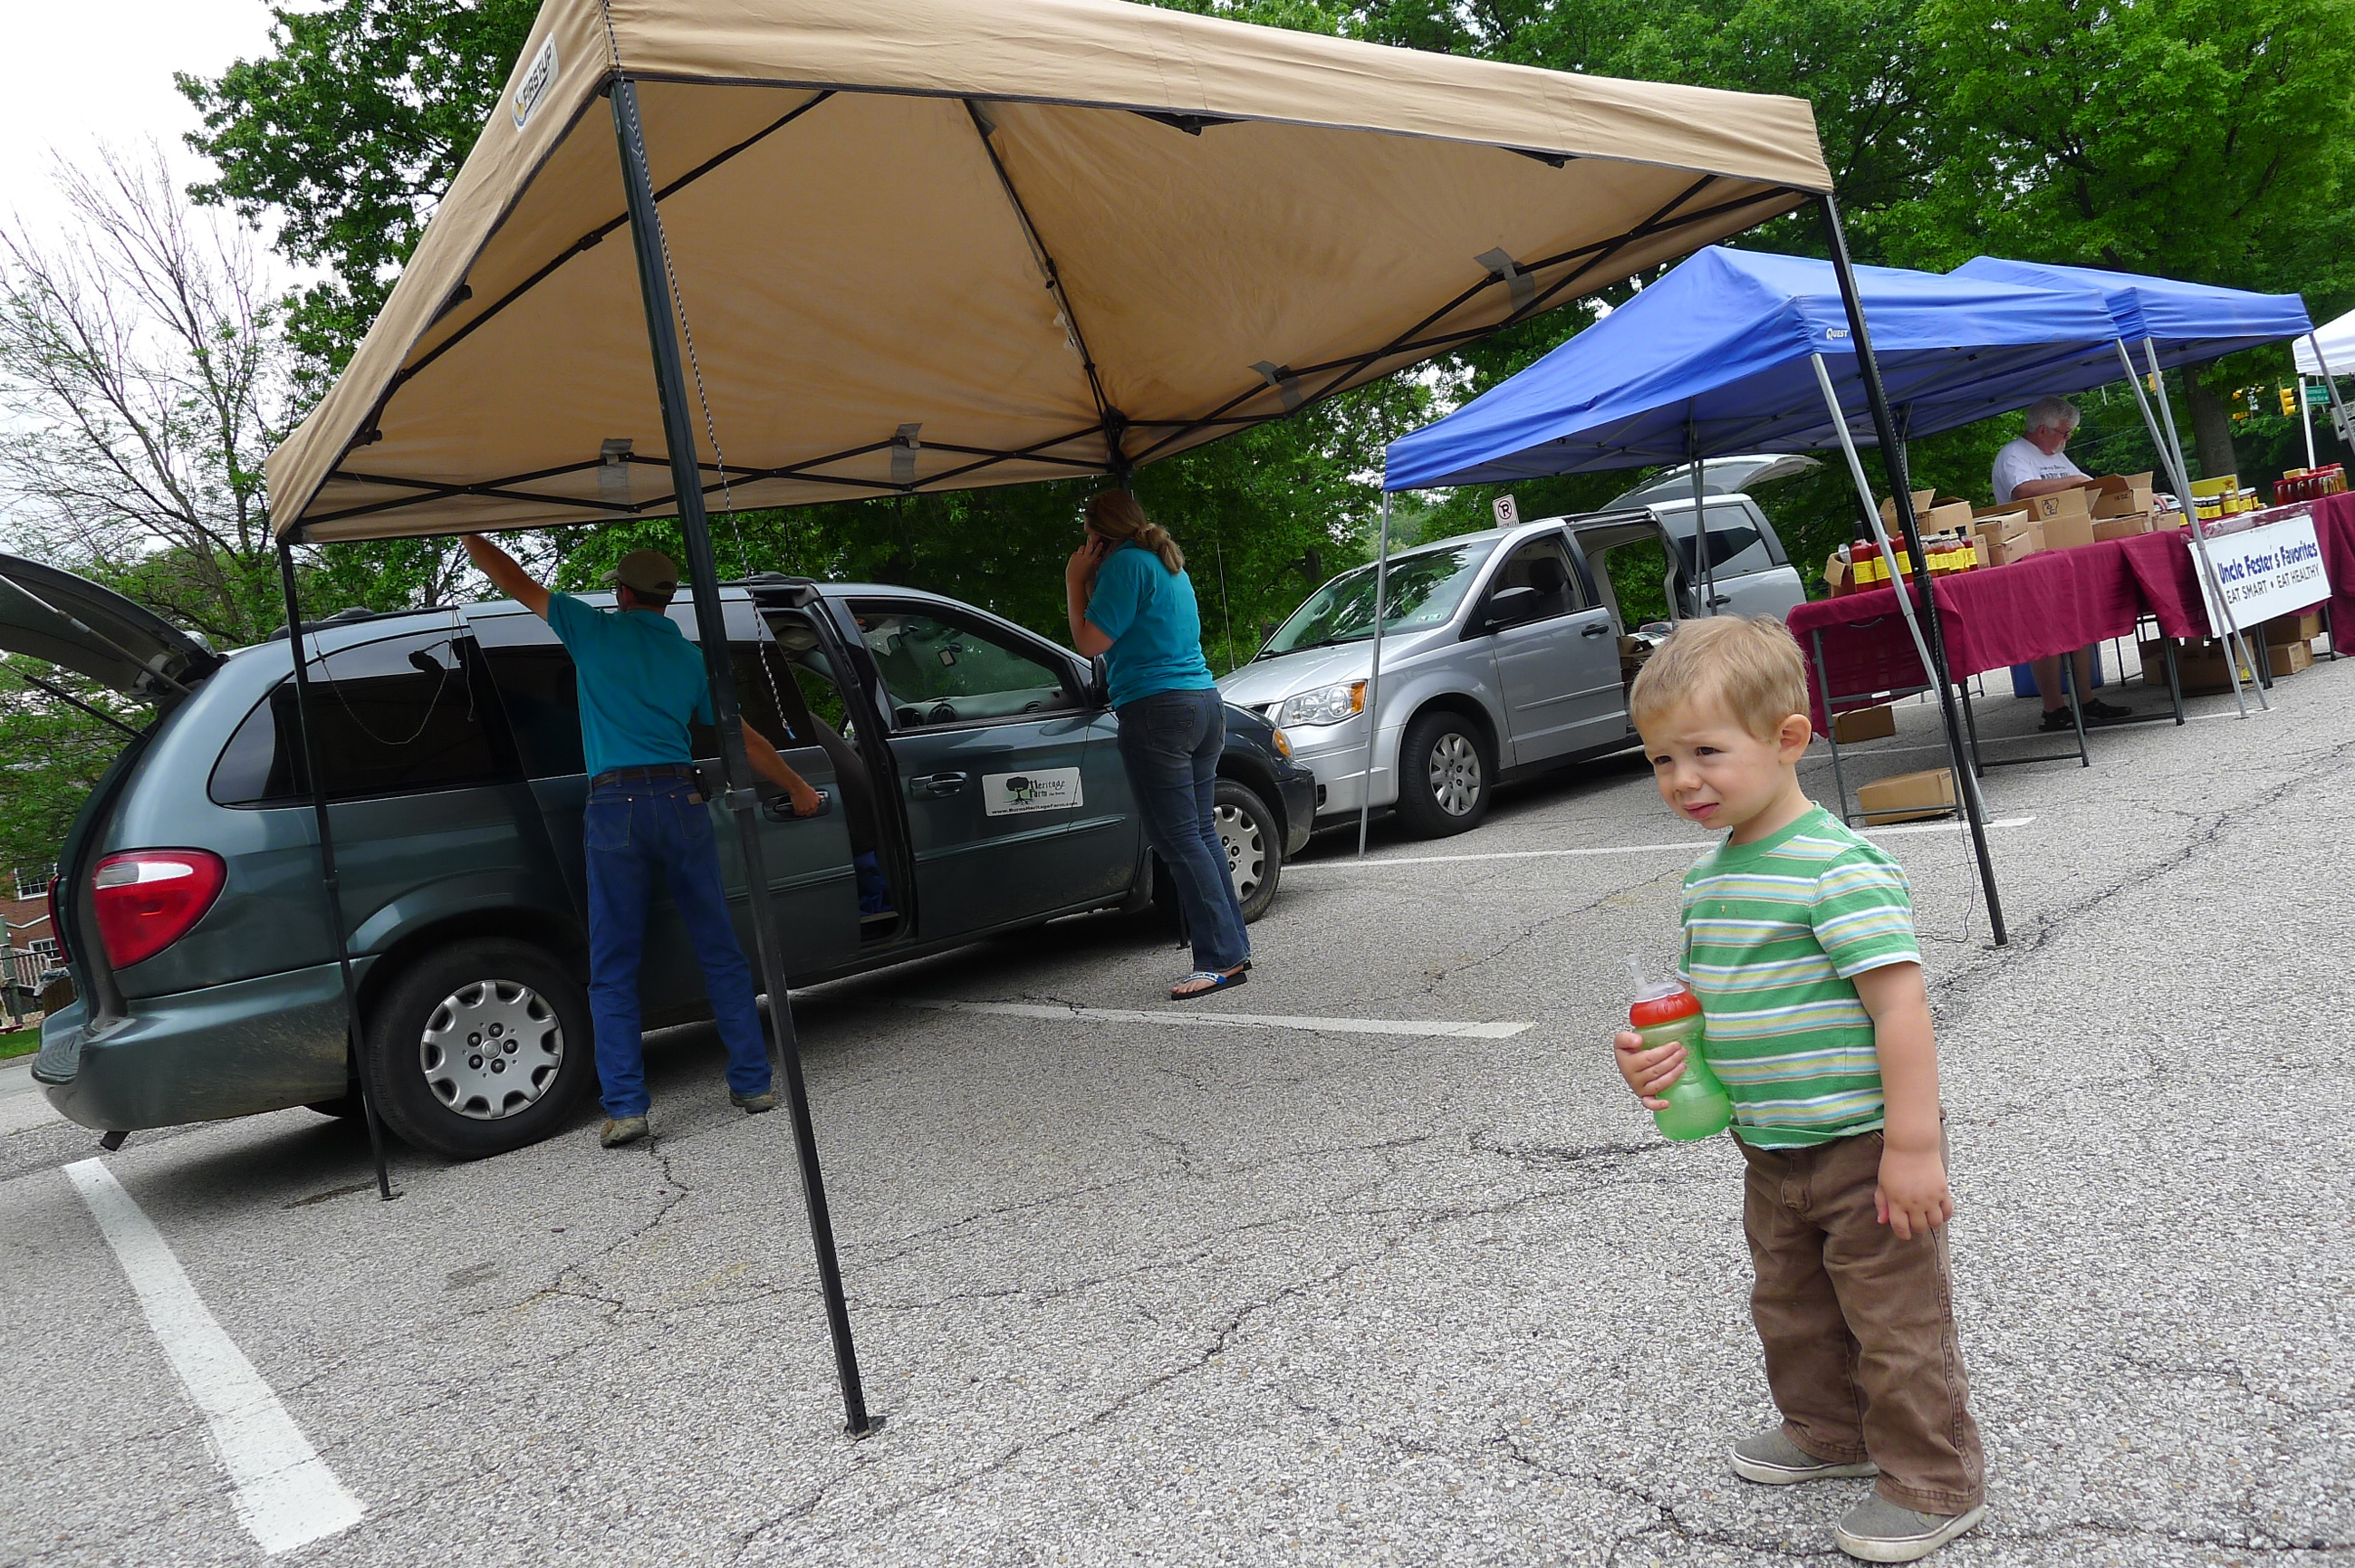 P1230750 2-year-old Micah Burns watch as his parents, Pete and Tara Burns, set up their Heritage Farm booth after driving all the way down from Ridgway at opening day at the Upper St. Clair Farmers Market on May 29.